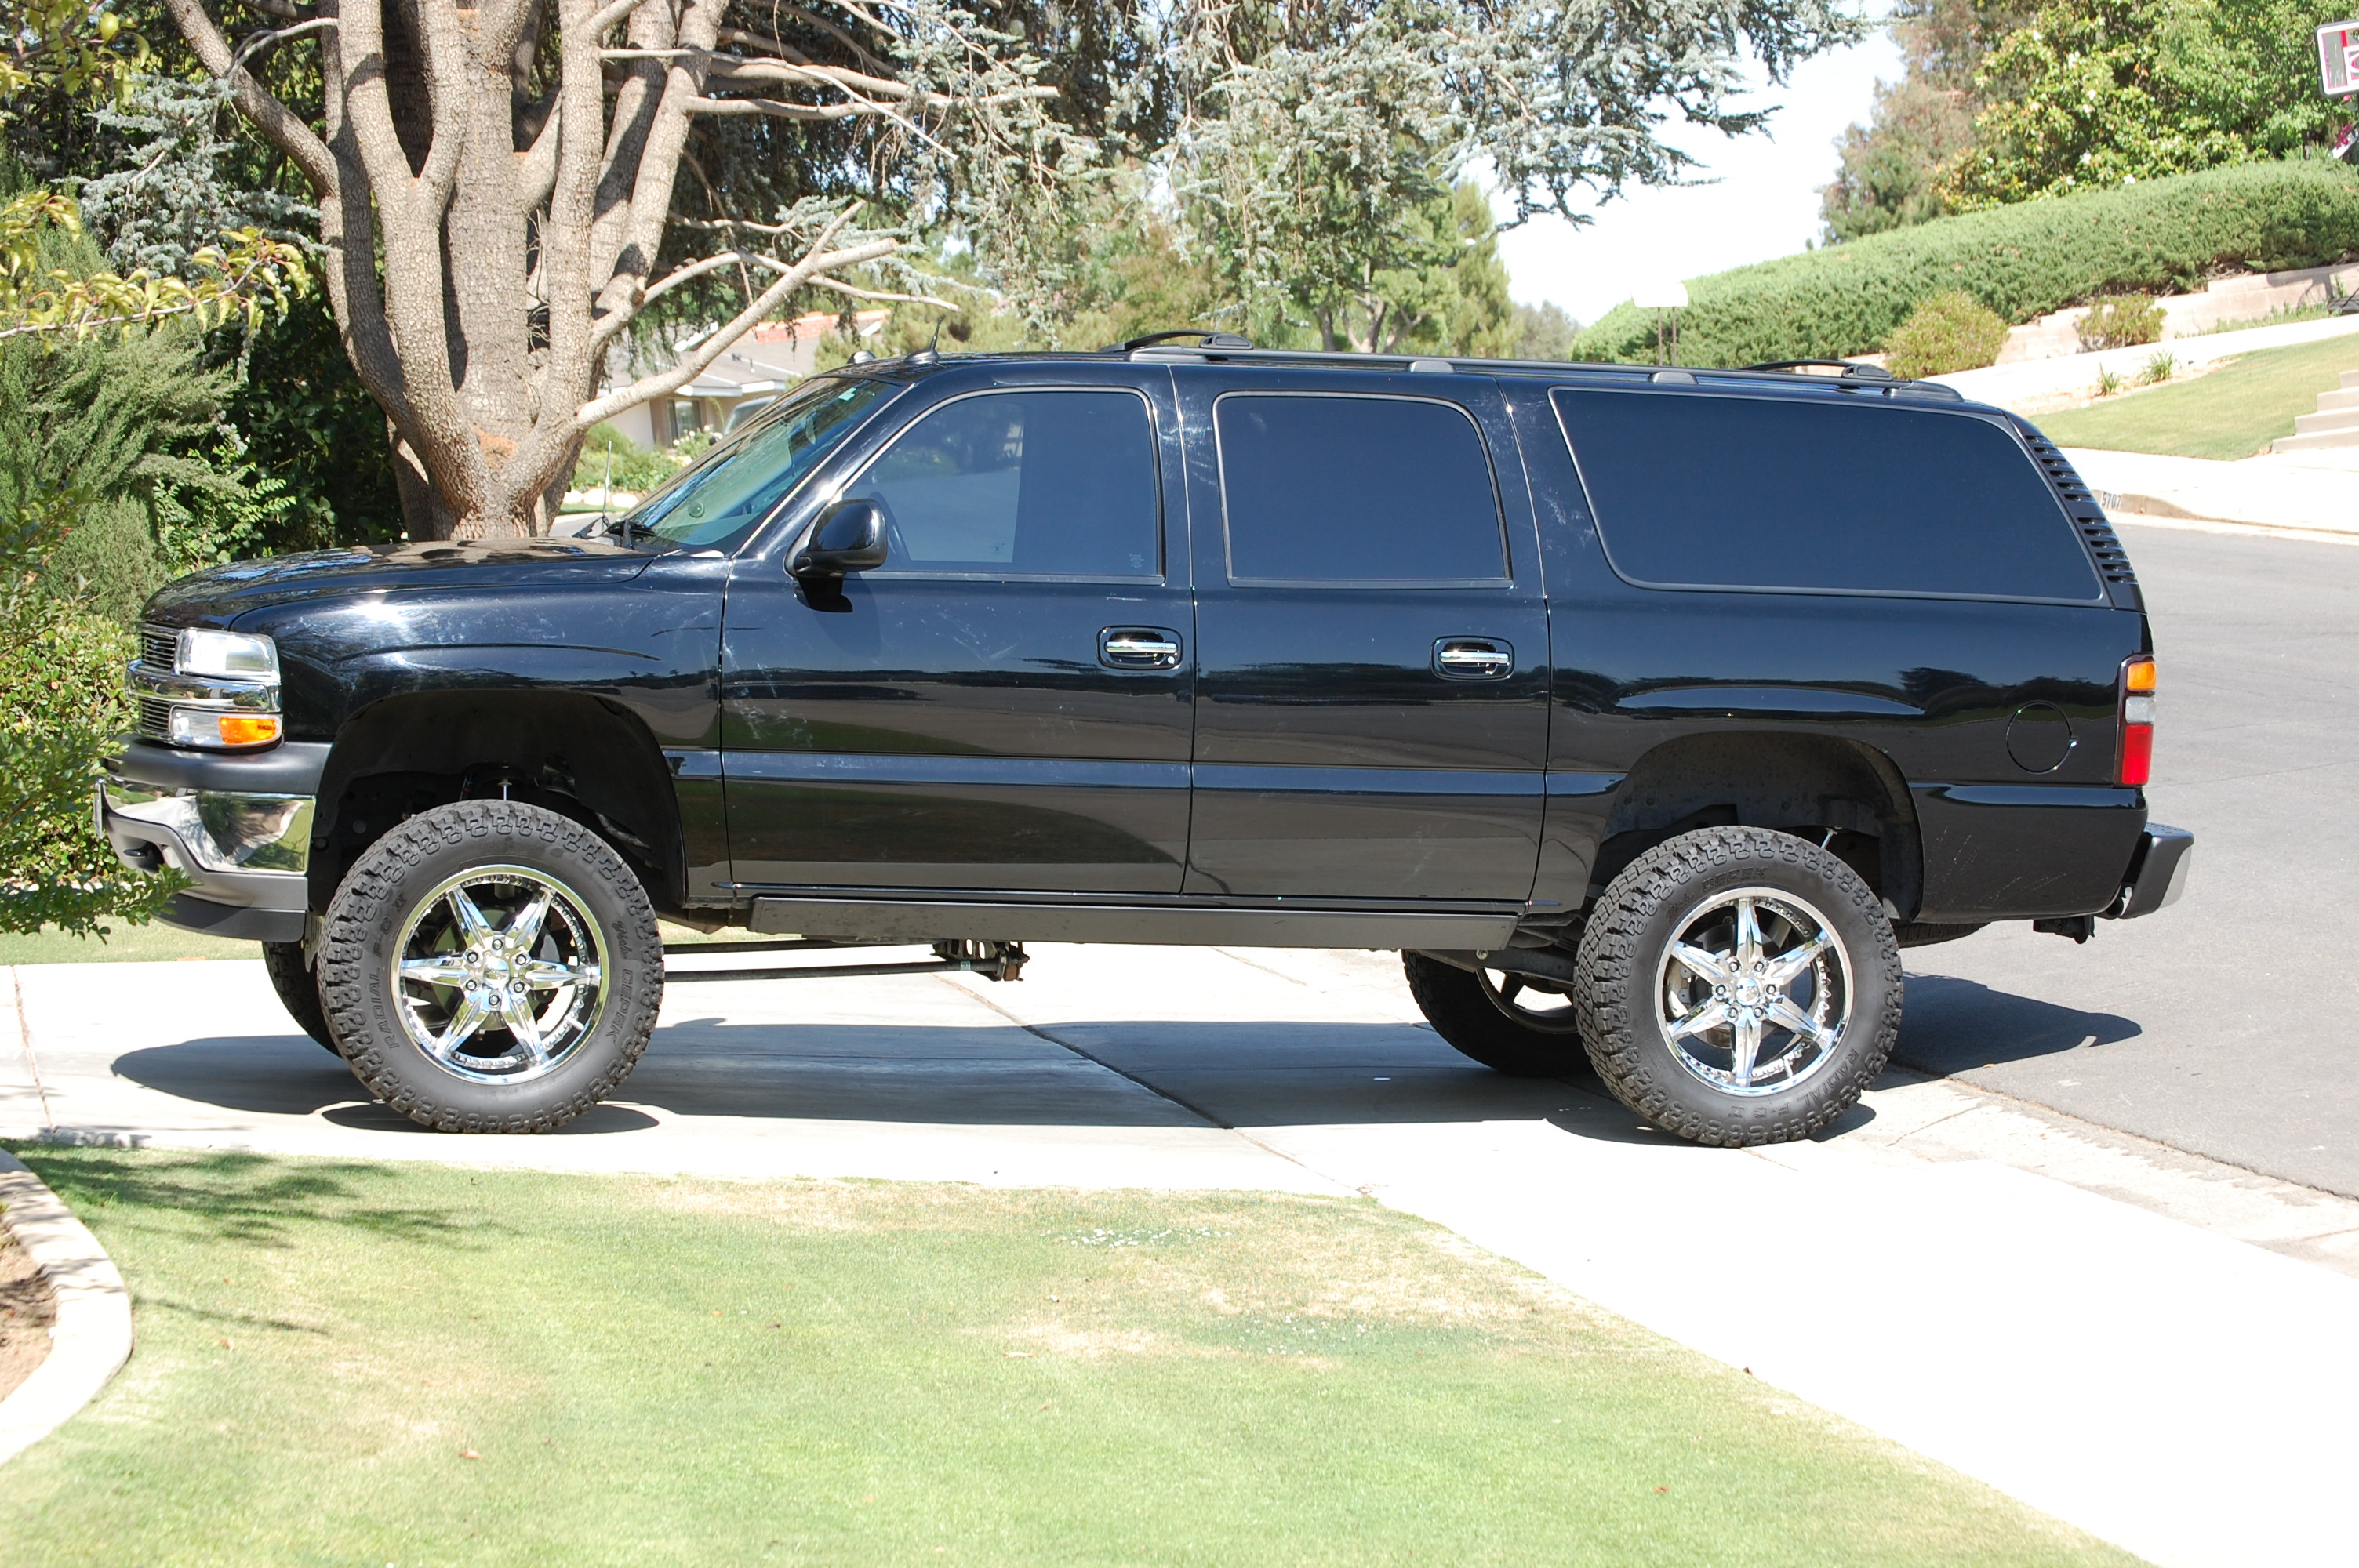 Gm Tahoe And Suburban In Lift Kit on 2005 Dodge Ram 1500 2wd Lifted